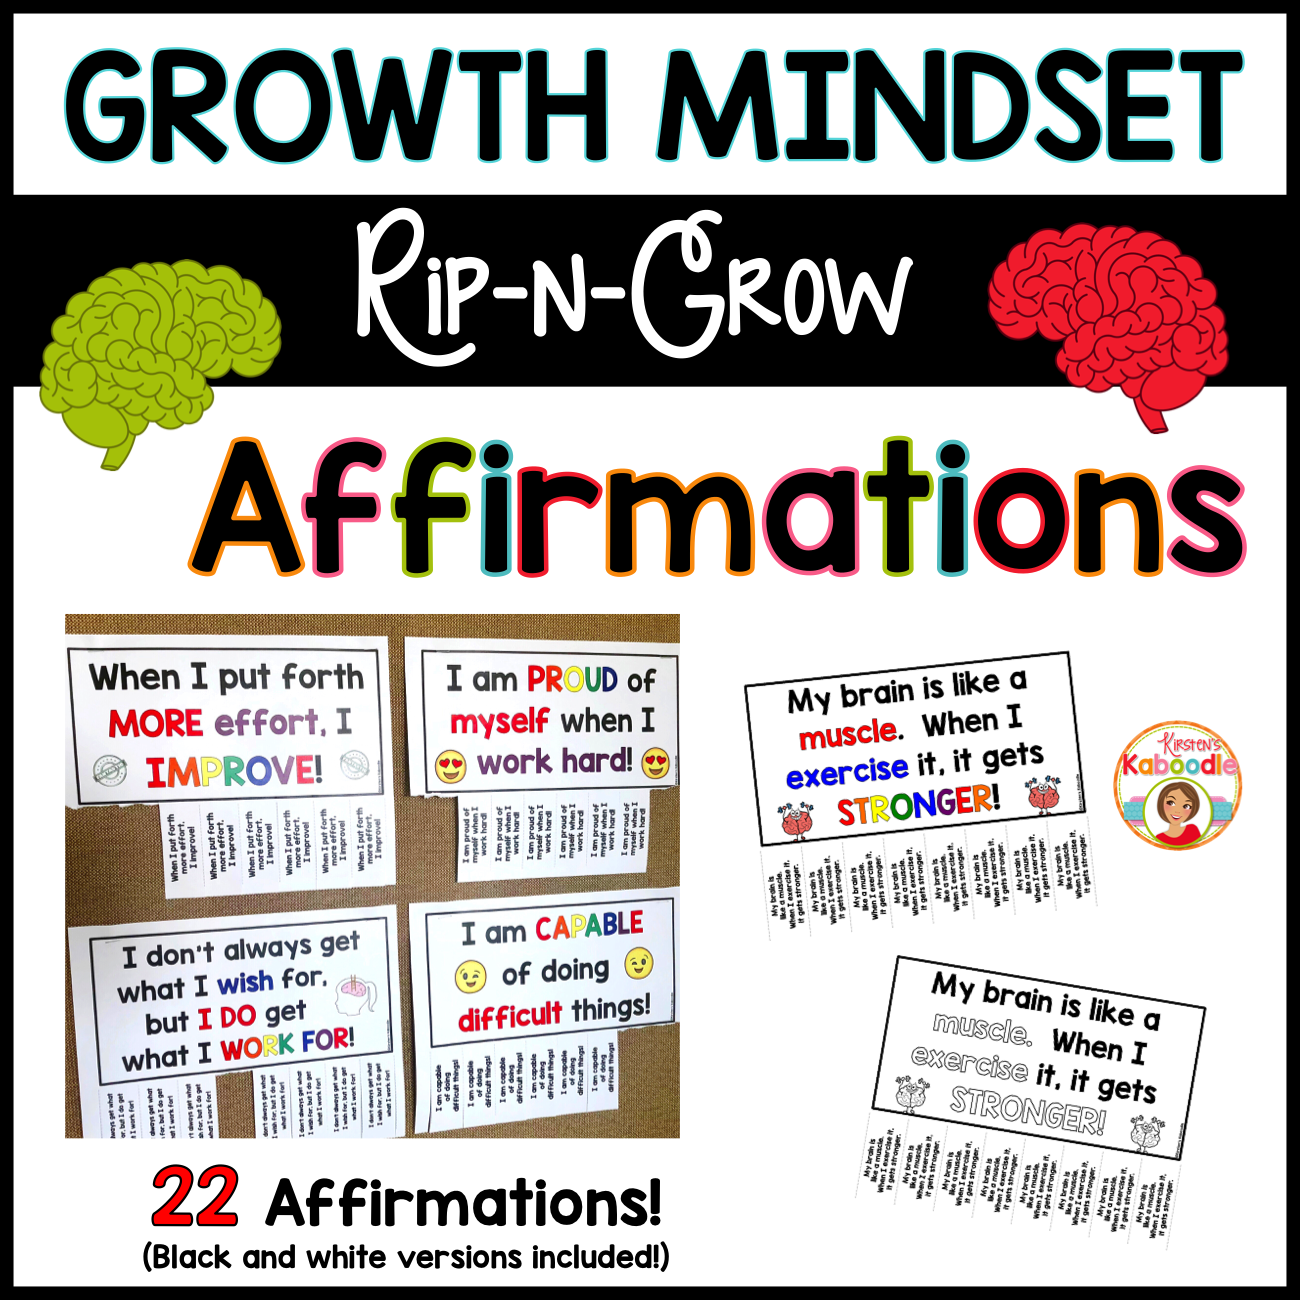 Growth Mindset Posters: Rip-n-Grow Affirmations